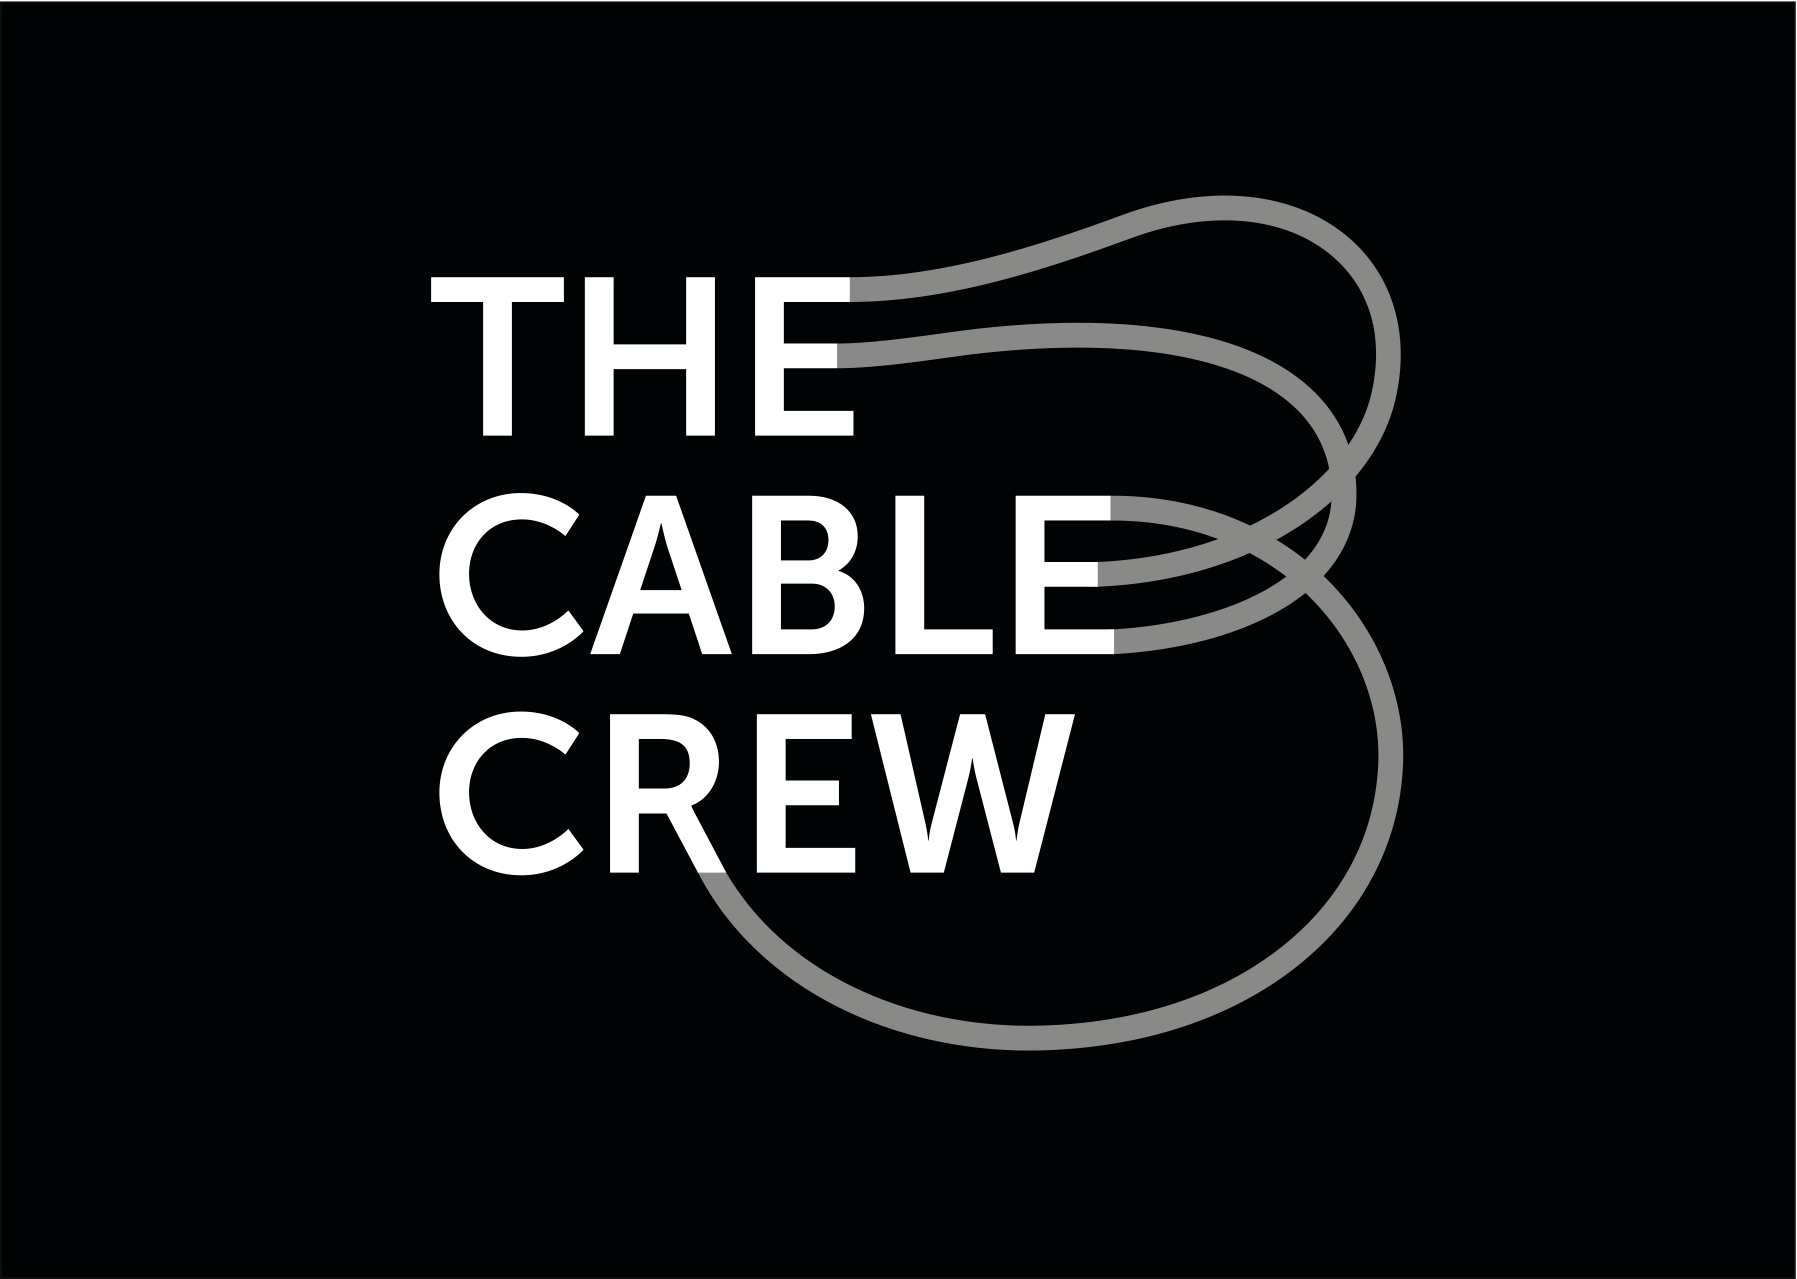 The Cable Crew